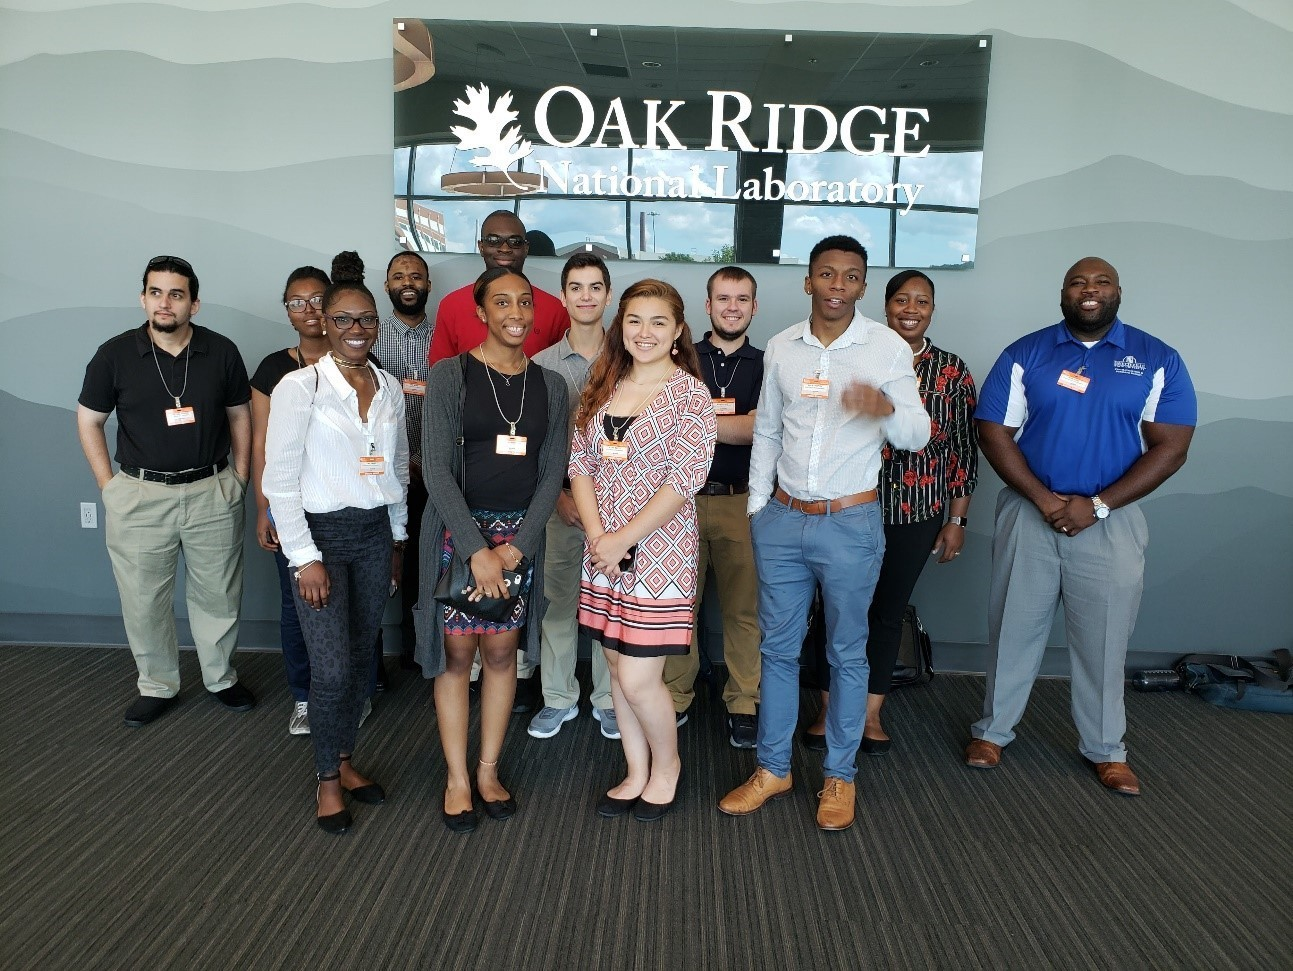 Fsu cdhs oak ridge national laboratory visit